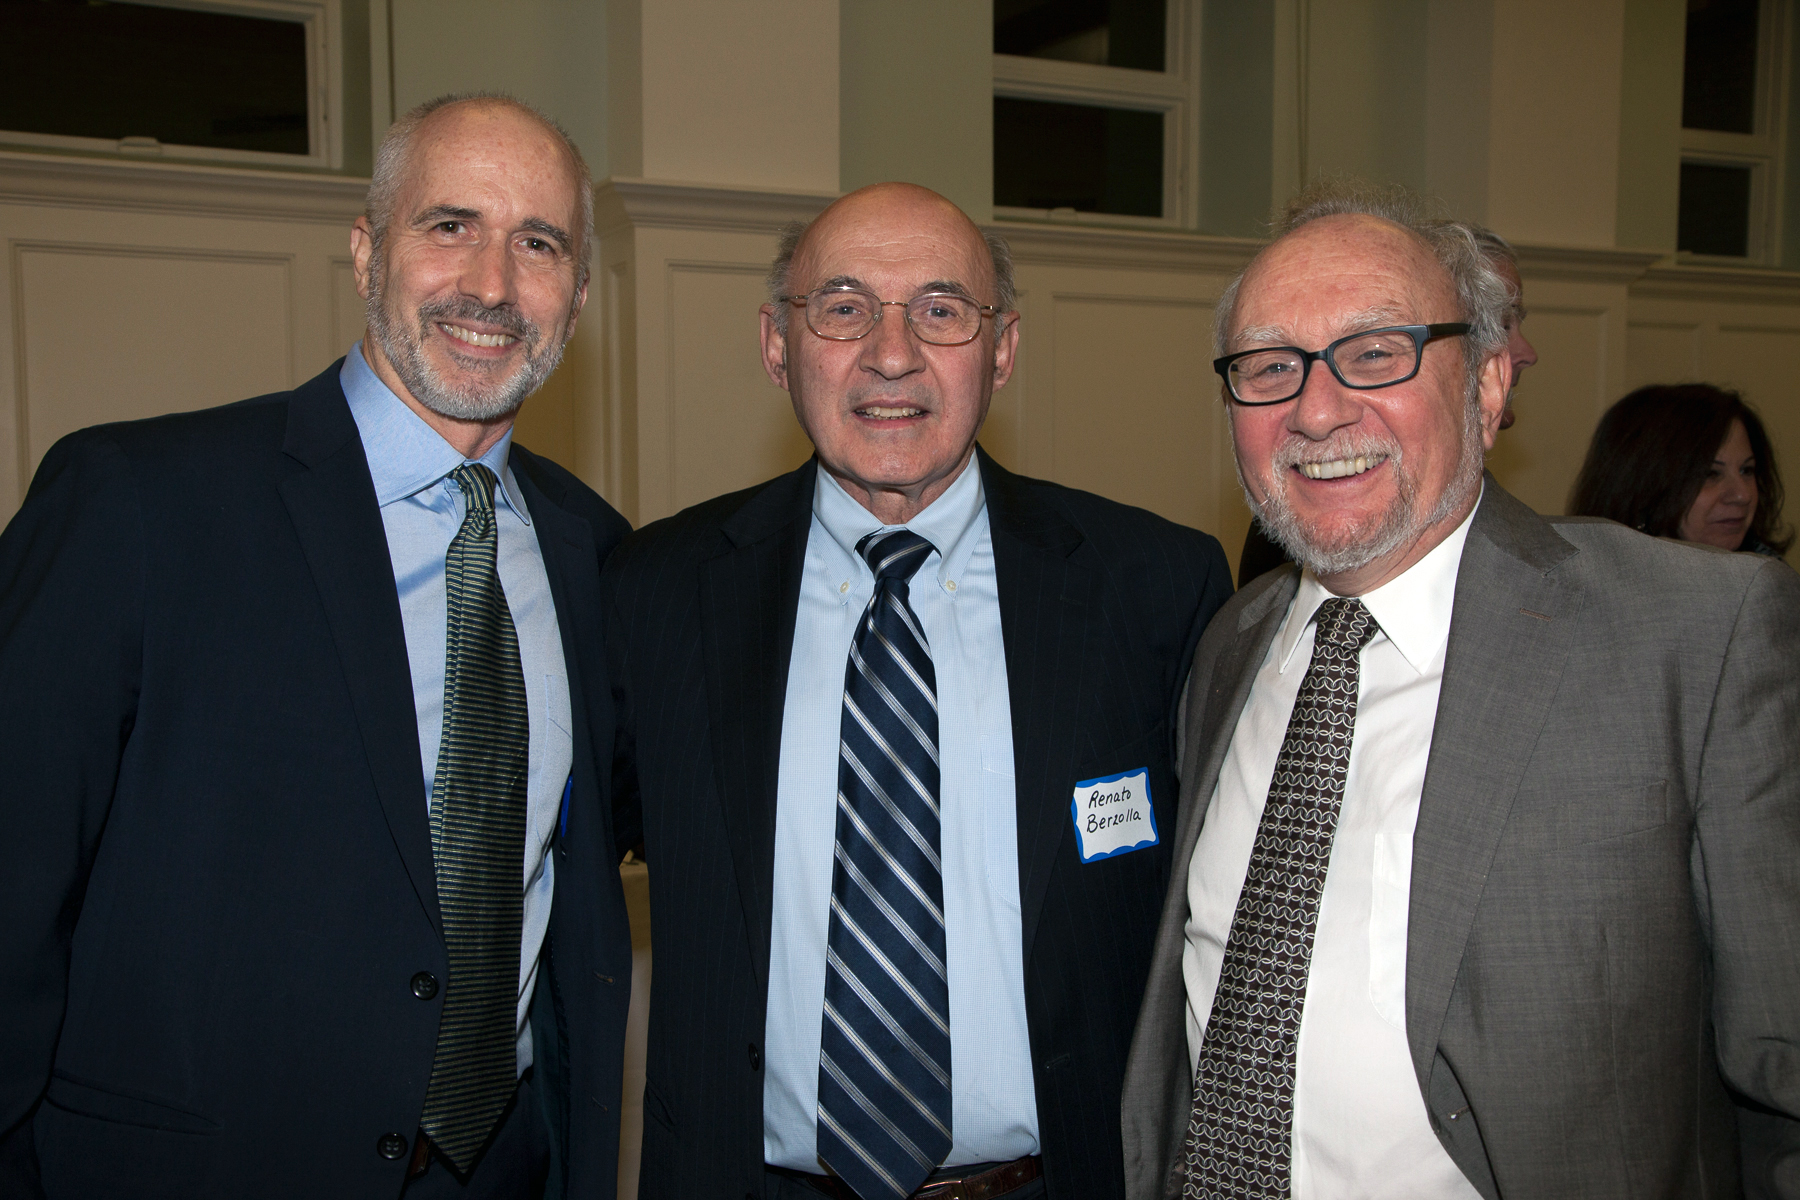 """L-R RNS National Correspondent David Gibson, who moderated the """"Election Aftermath: Faith & the Common Good"""" panel discussion, with Deacon Renator Berzolla, of St. Catherine of Siena Parish, Riverside, Conn., who helped organize the evening event, with Dr. Mark Silk of Trinity College, Hartford, Conn., a panelist and RNS """"Spiritual Politics"""" columnist."""